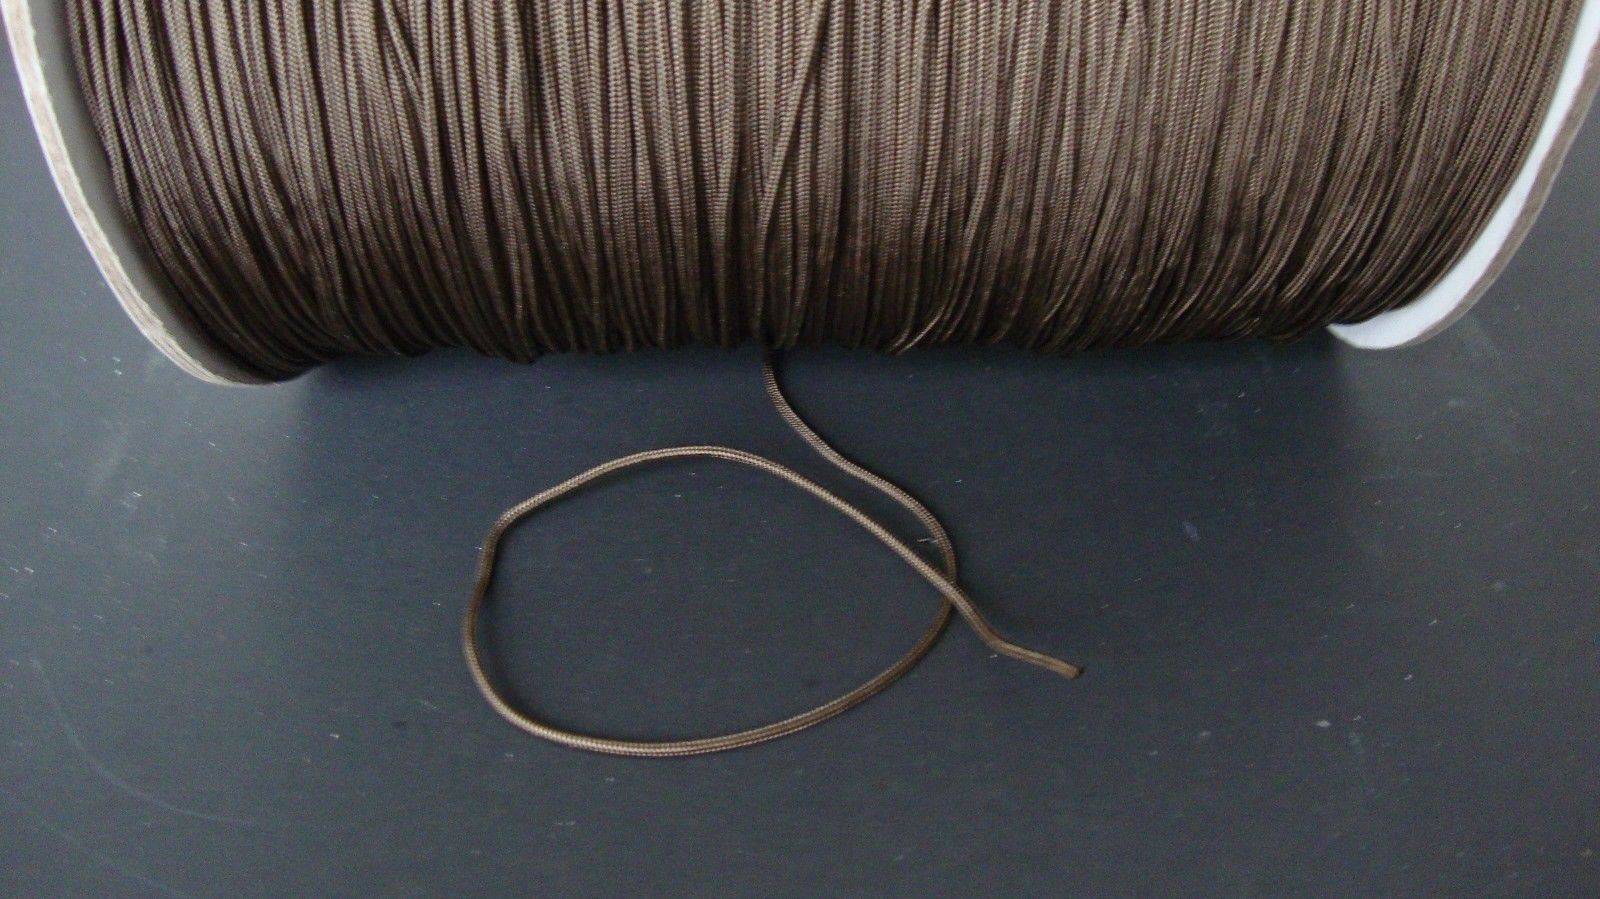 50 FEET:1.8mm CHOCOLATE LIFT CORD for Blinds, Roman Shades and More